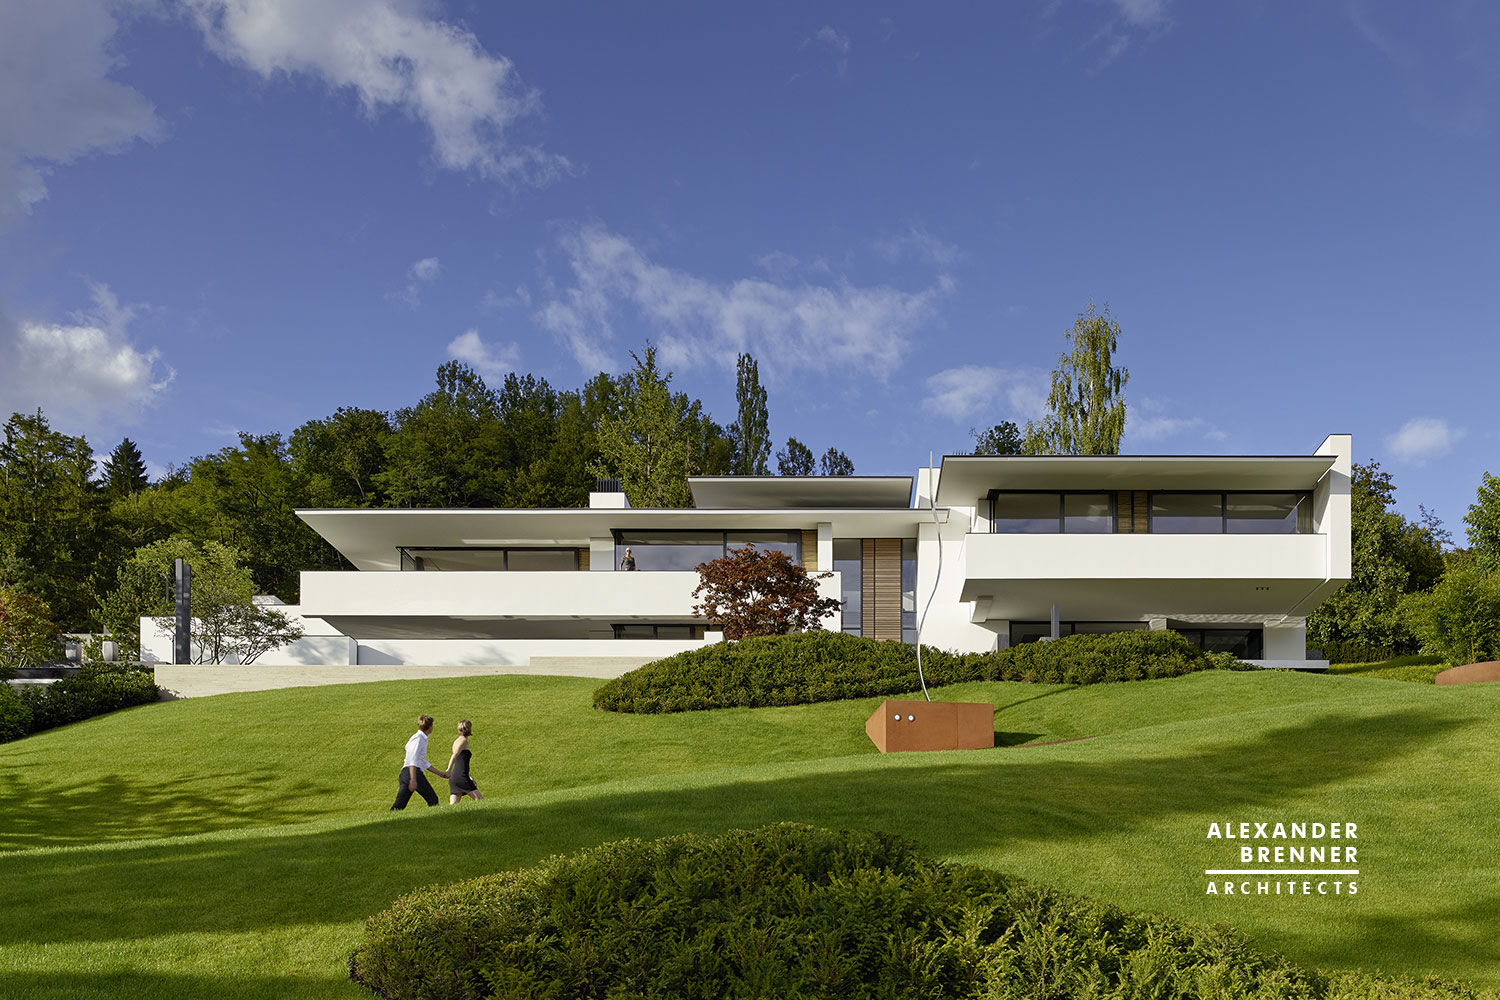 Alexander brenner architects design a contemporary home in for Contemporary residence